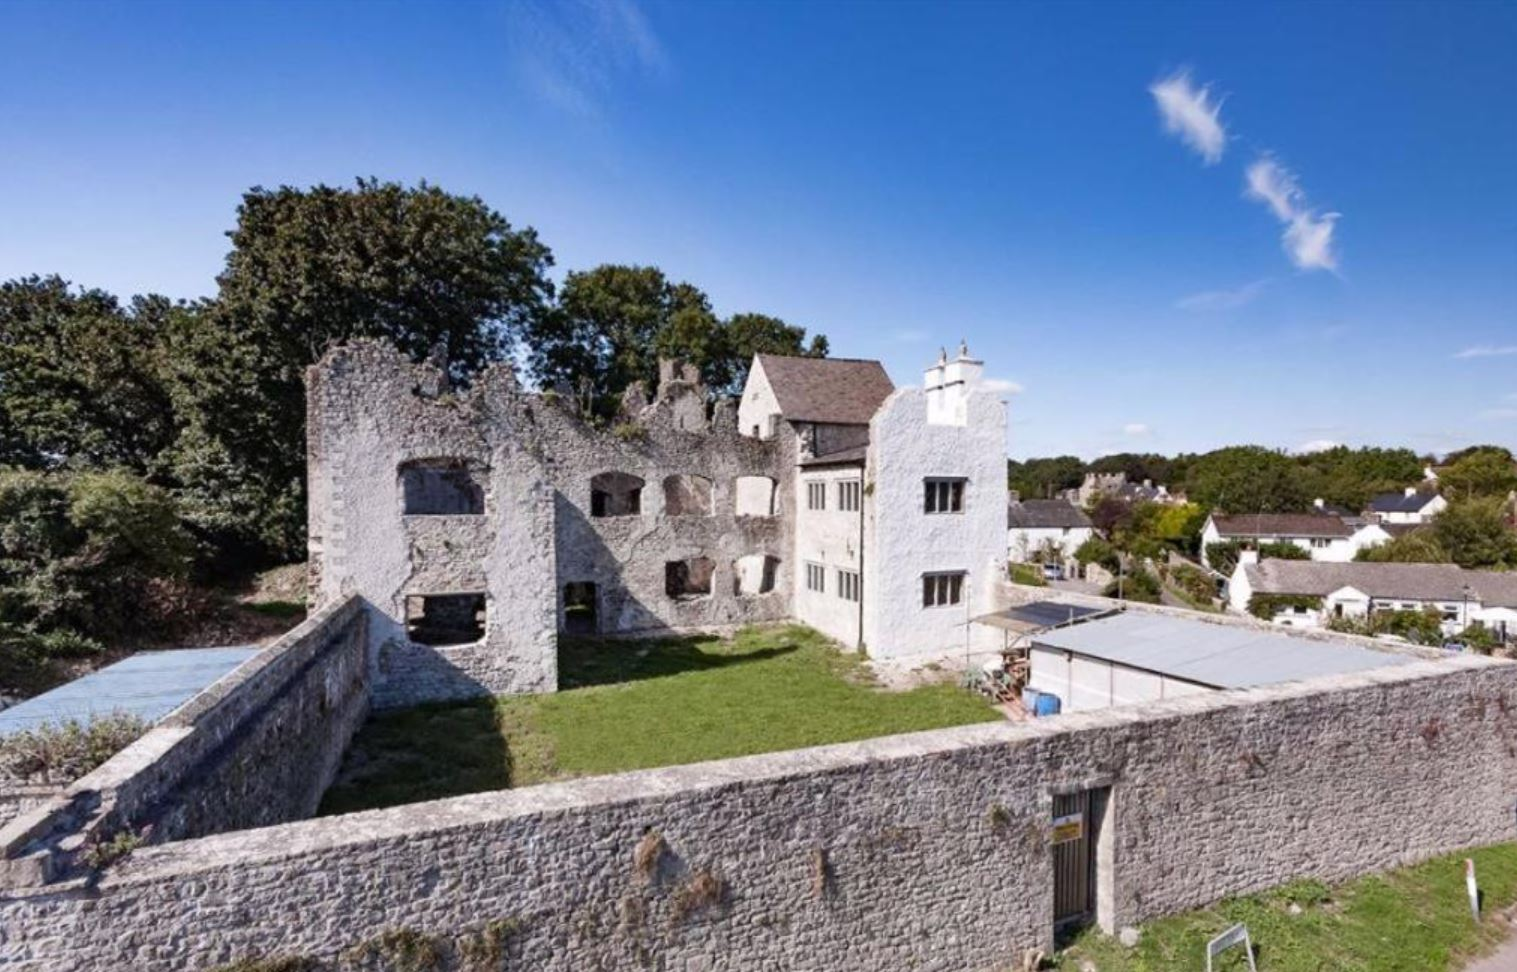 Man turns £5,000 castle ruins into £1.2 million home